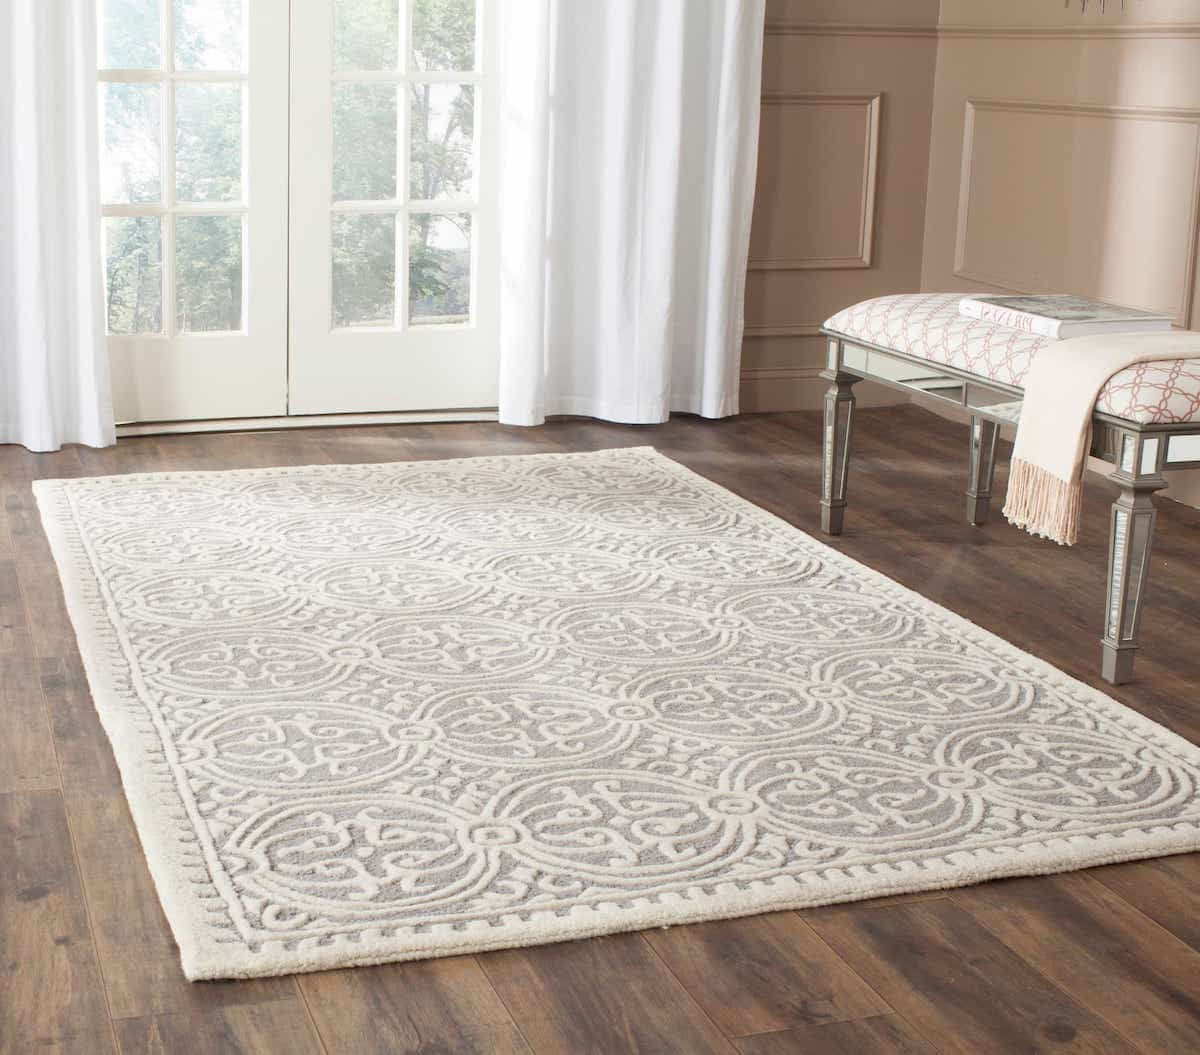 Contemporary Safavieh Handmade Cambridge Moroccan Silver Area Wool Rugs (Image 3 of 15)